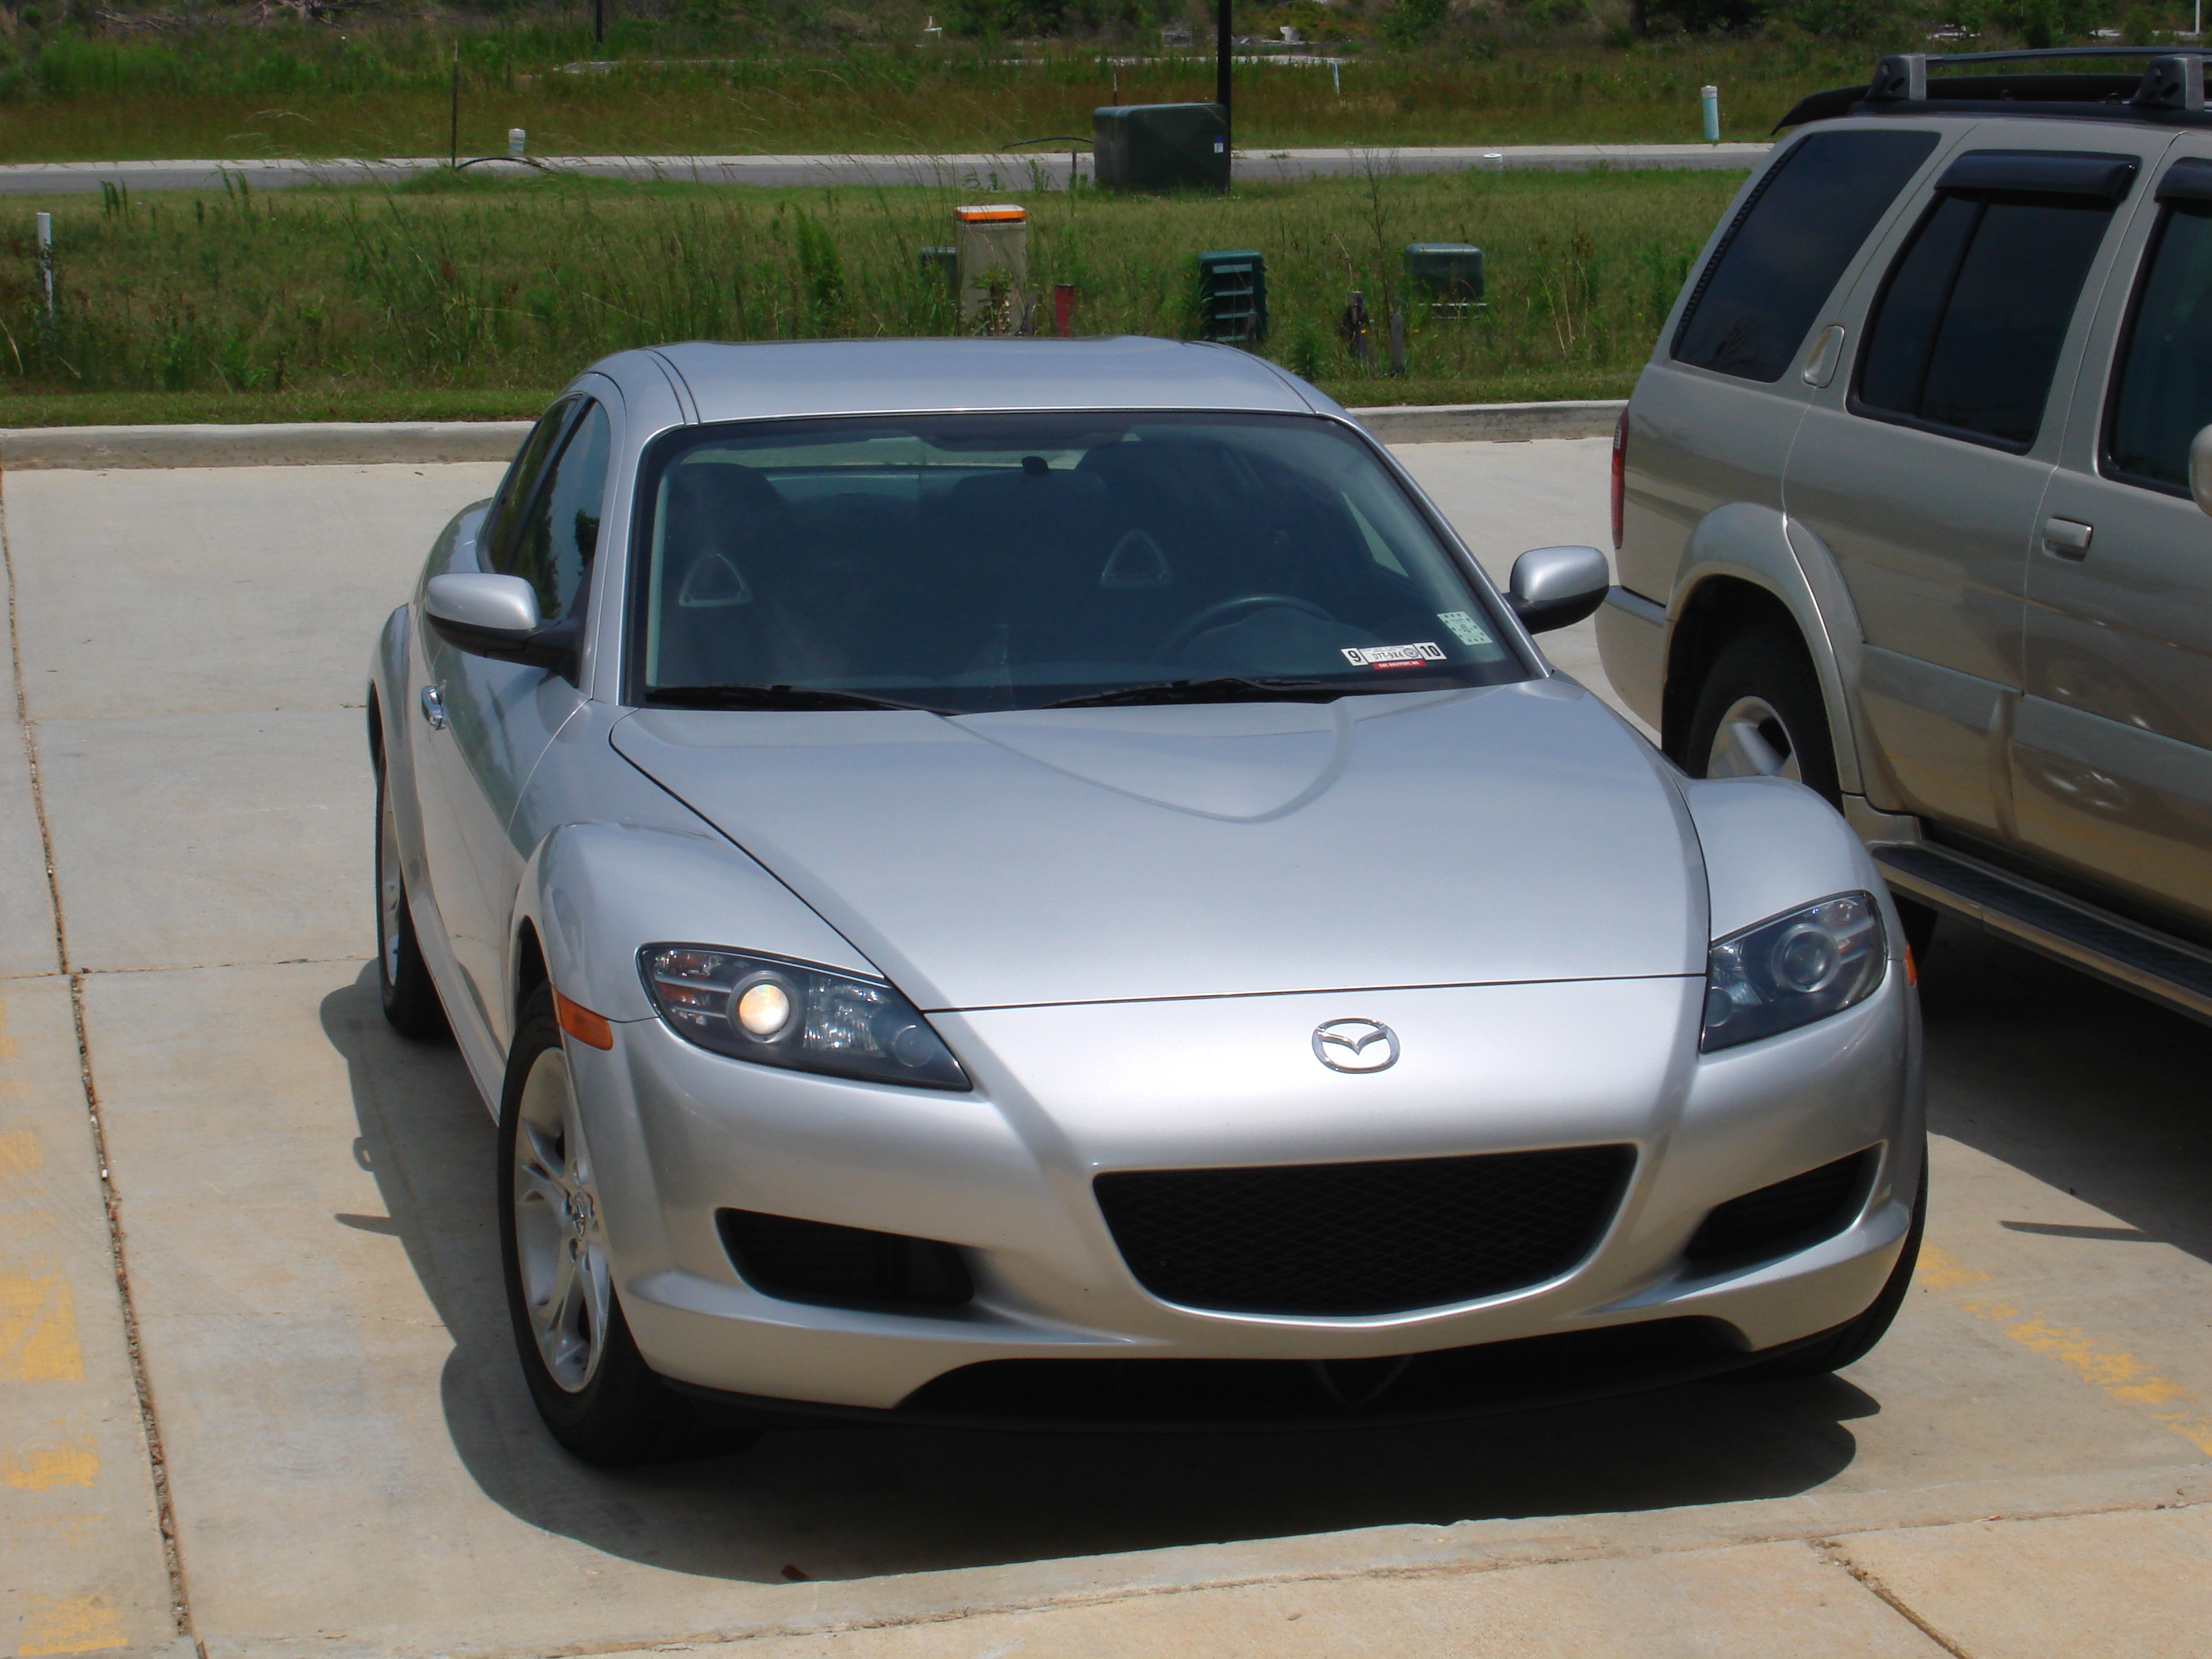 sufan86 39 s 2008 mazda rx 8 in long beach ms. Black Bedroom Furniture Sets. Home Design Ideas